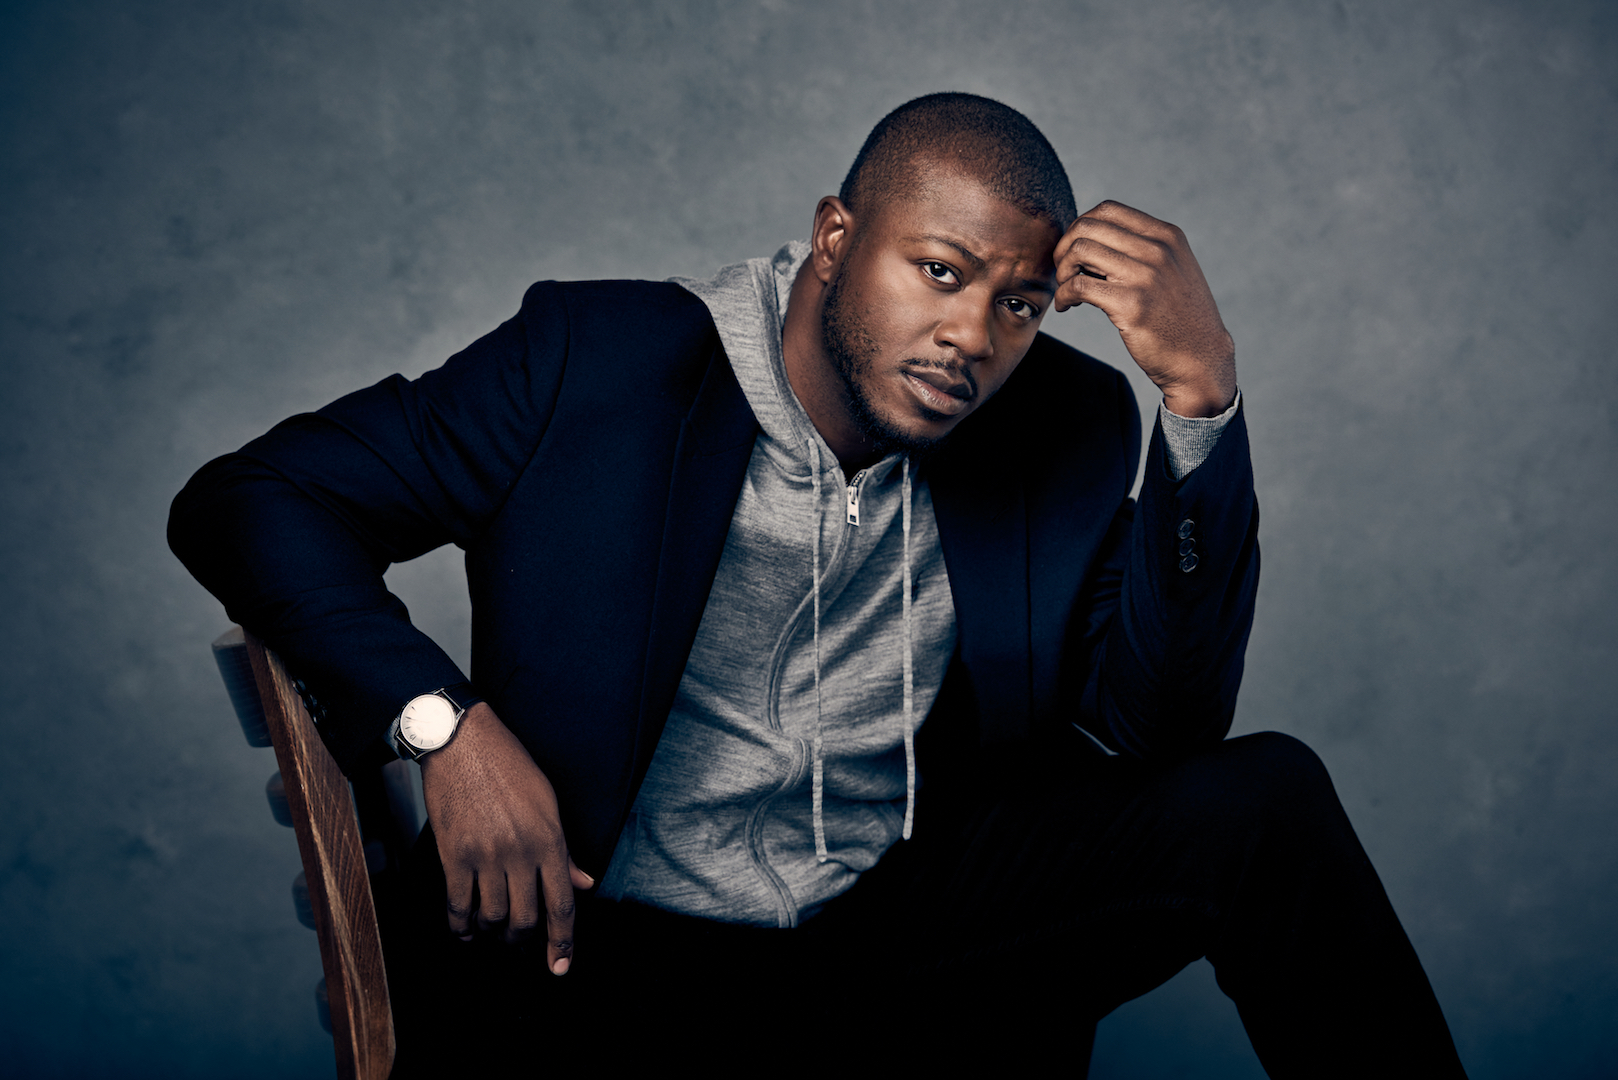 edwin hodge 0361 - entertainment - Meet SIX Star Edwin Hodge - Hollywood, Actor - Meet SIX Star Edwin Hodge